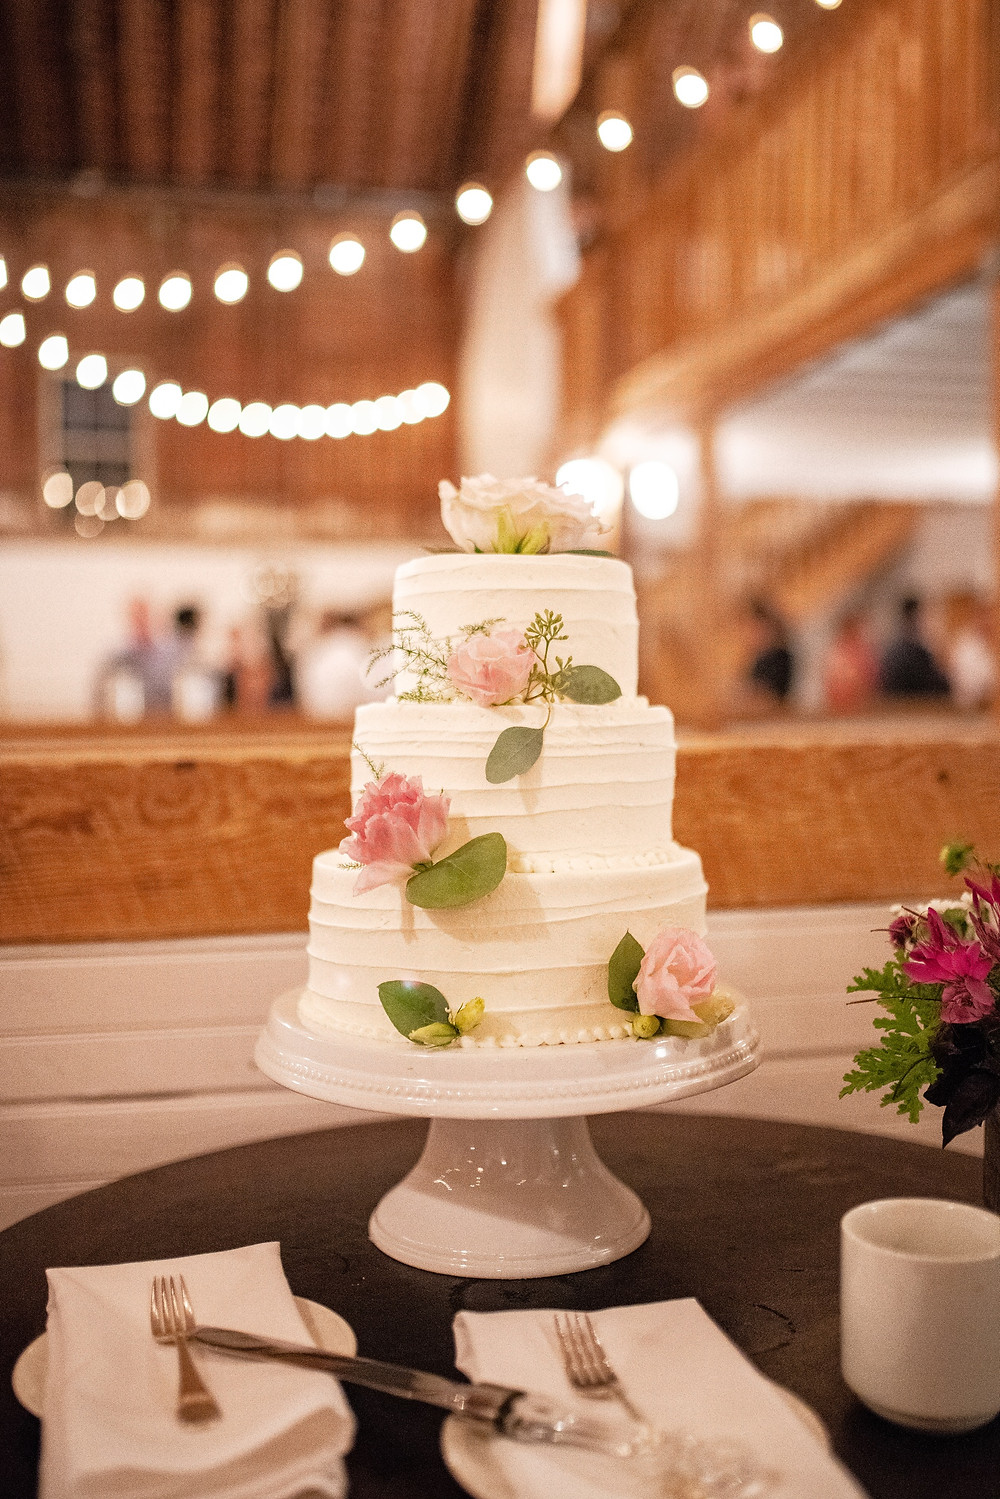 cake with roses and string lights